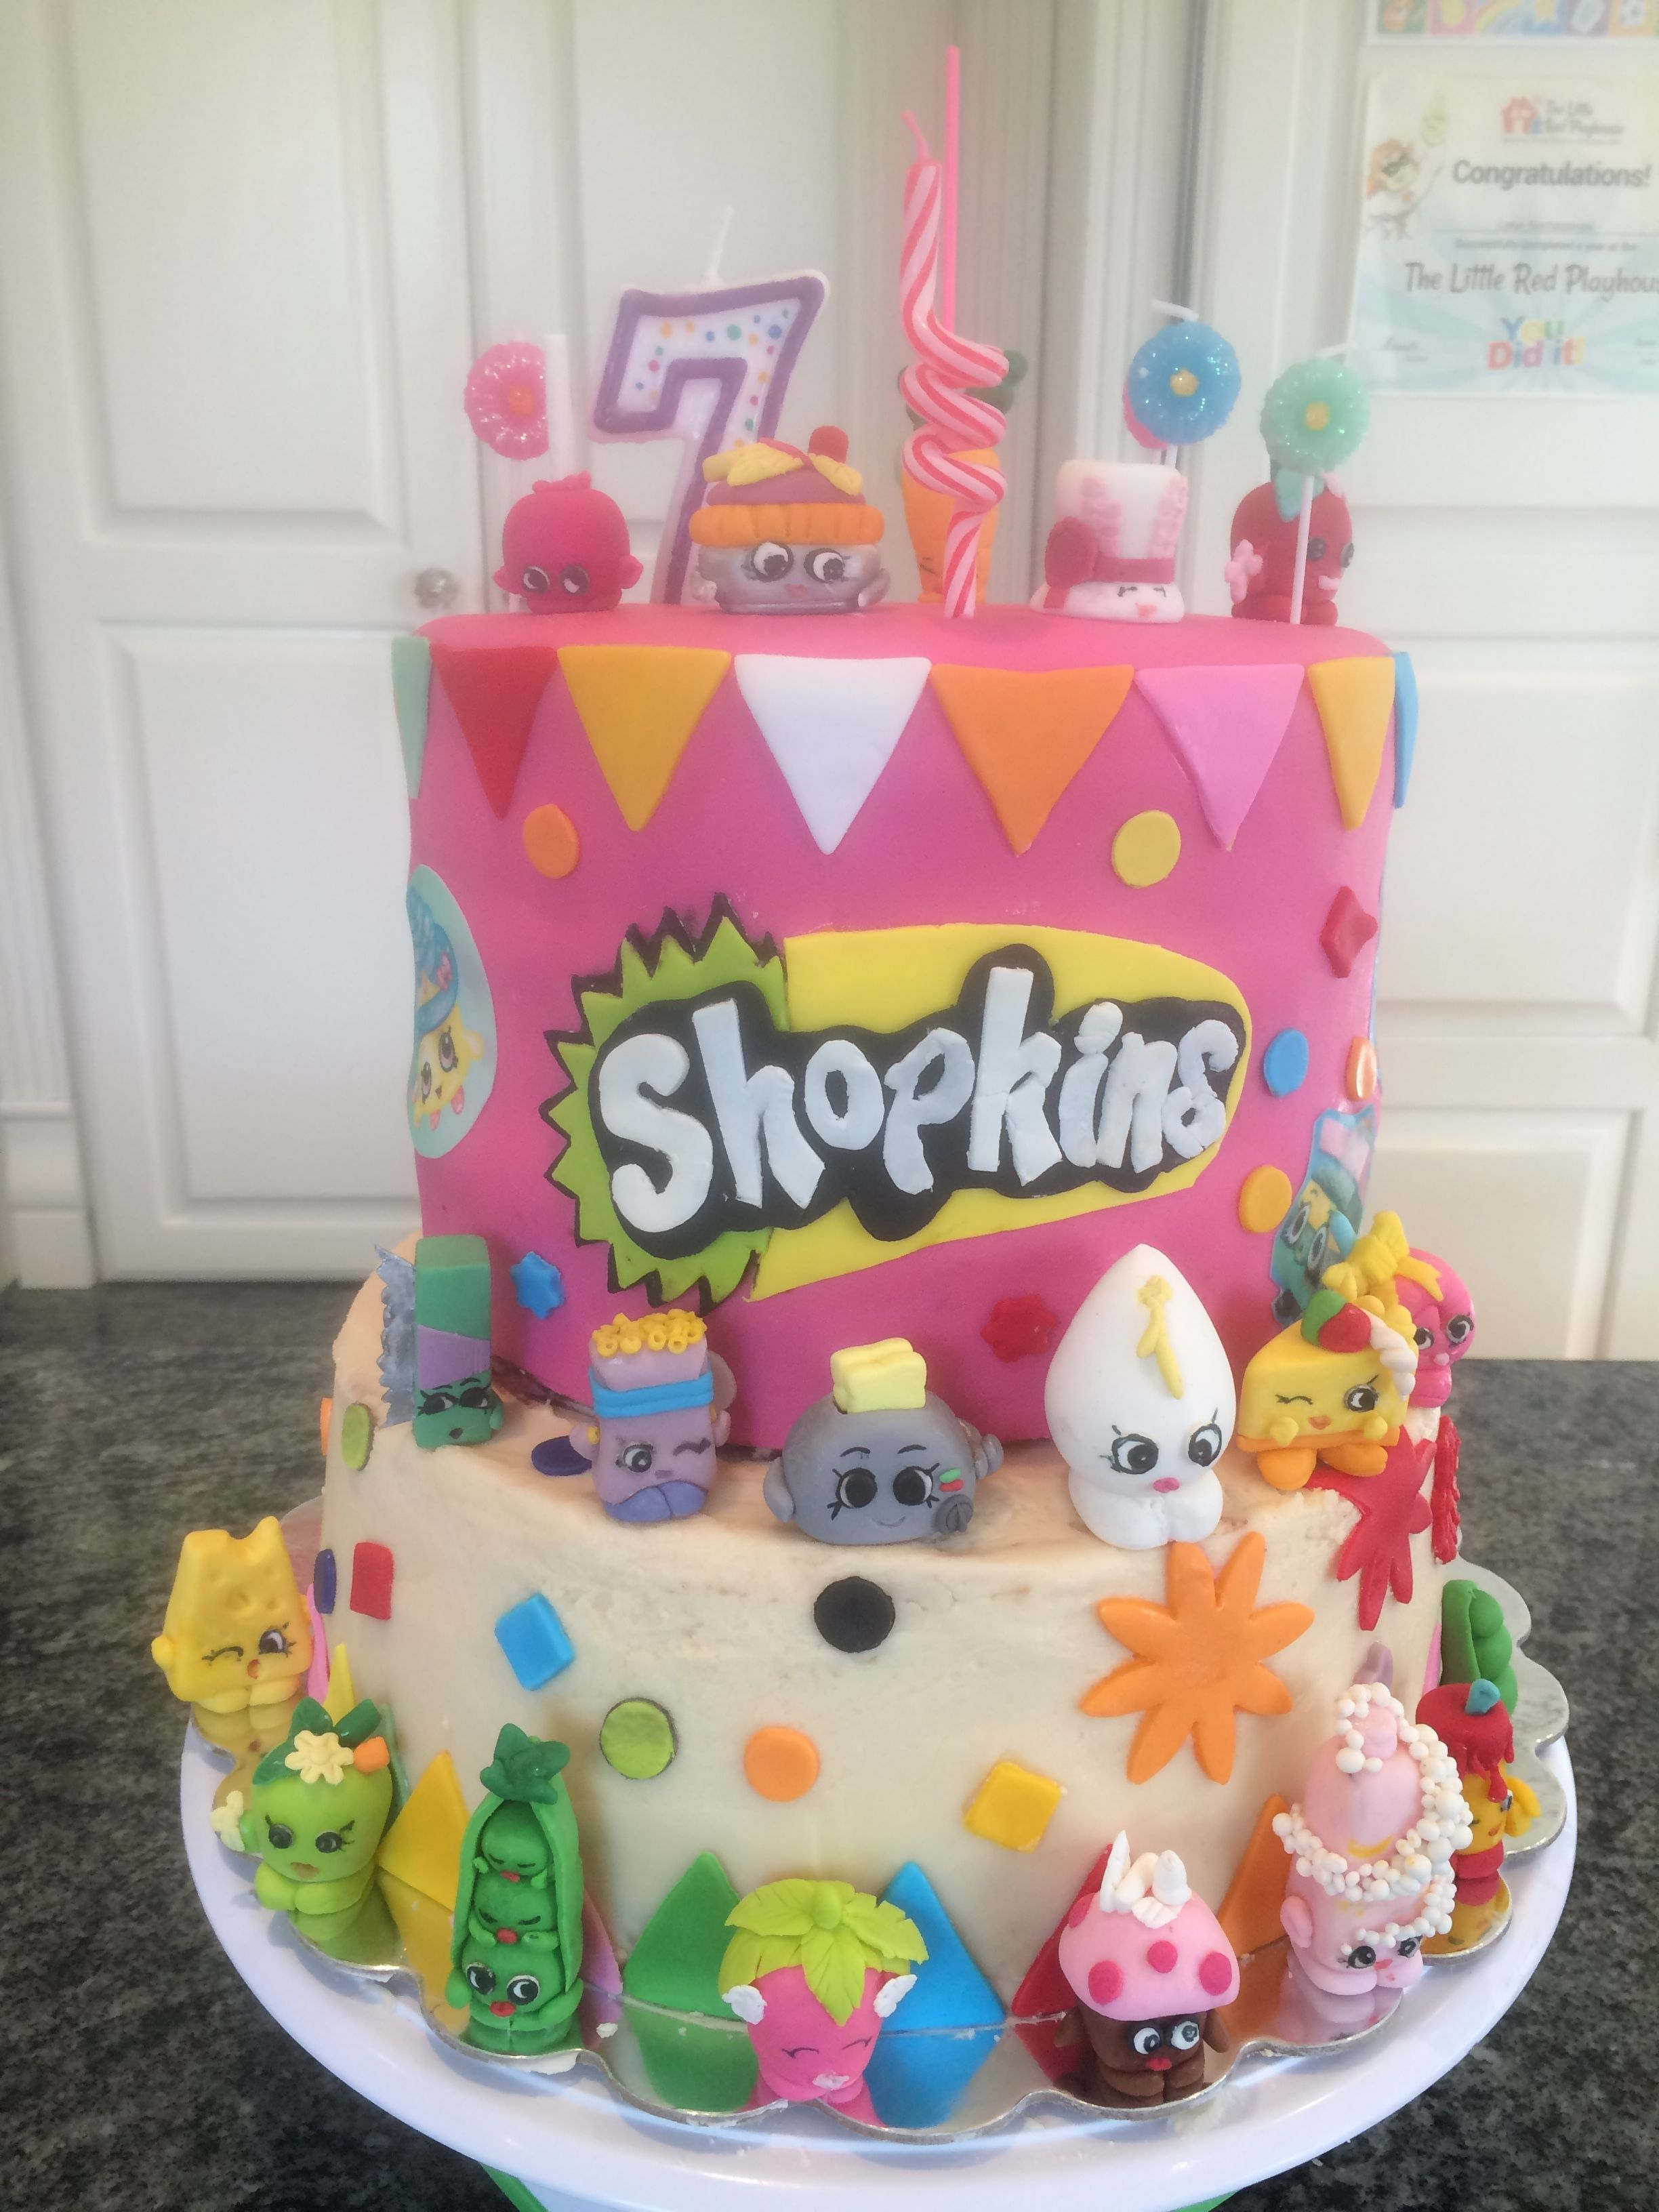 Birthday Cake Ideas Girl 7 : Shopkins Birthday cake Season 3 /craft! My 7 yr old loved ...